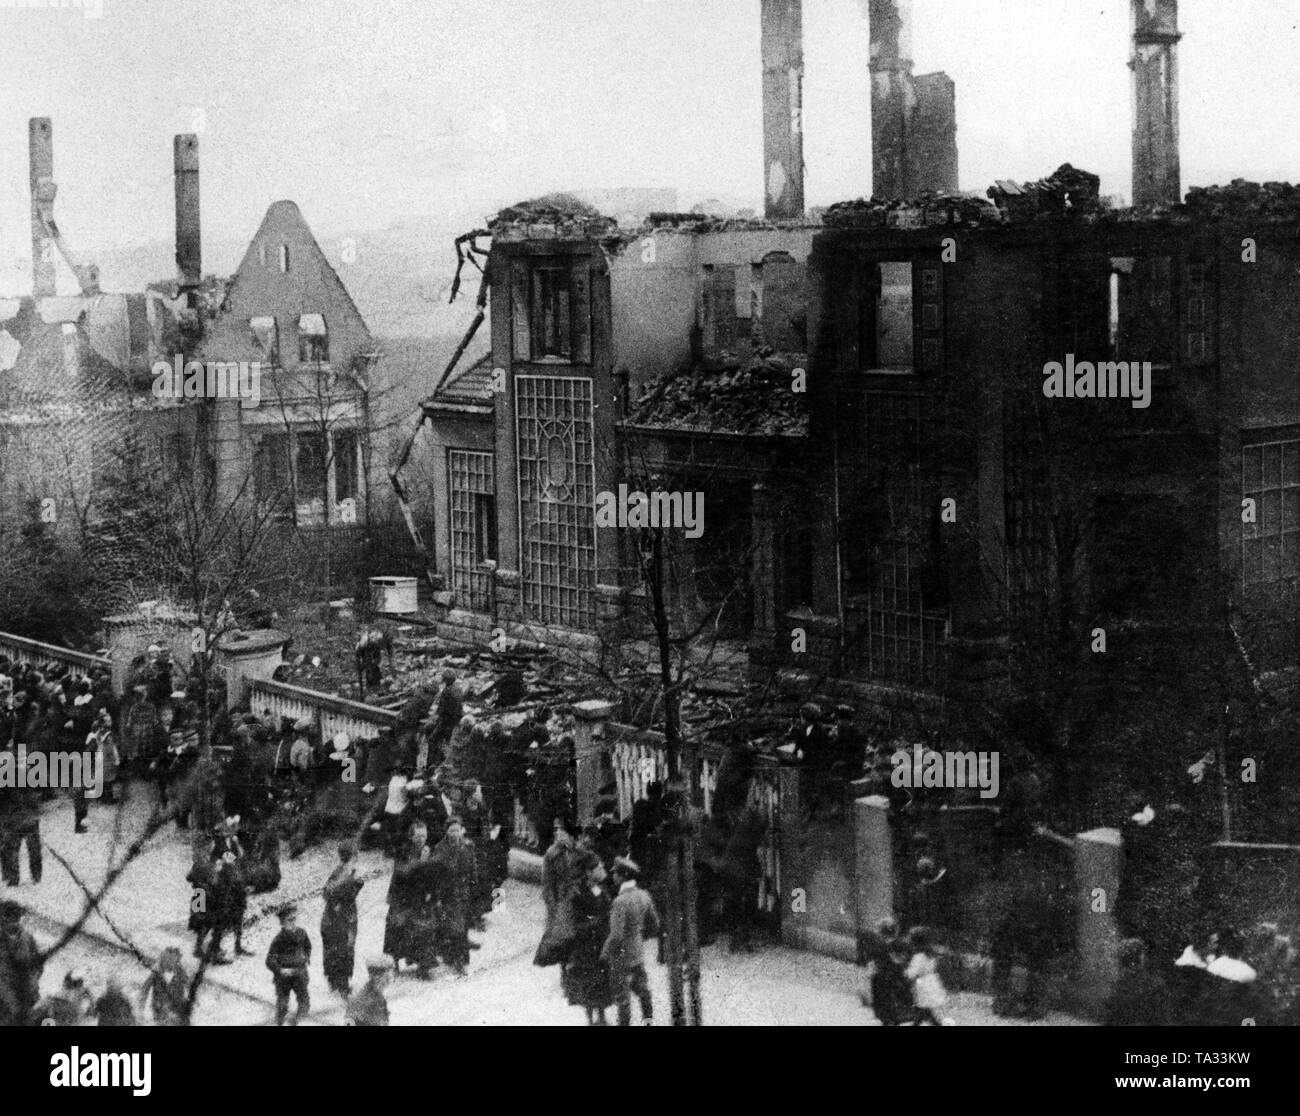 Most of the followers of Max Hoelzl come from the completely impoverished population in the Vogtland. Here also occurred unrests and attacks on the possession of some people particularly hated by the population.This photograph shows the villas of the merchant Franz Lange and the Baumeister Baumann in Falkenstein in Vogtland that were set on fire by the Communists. - Stock Image